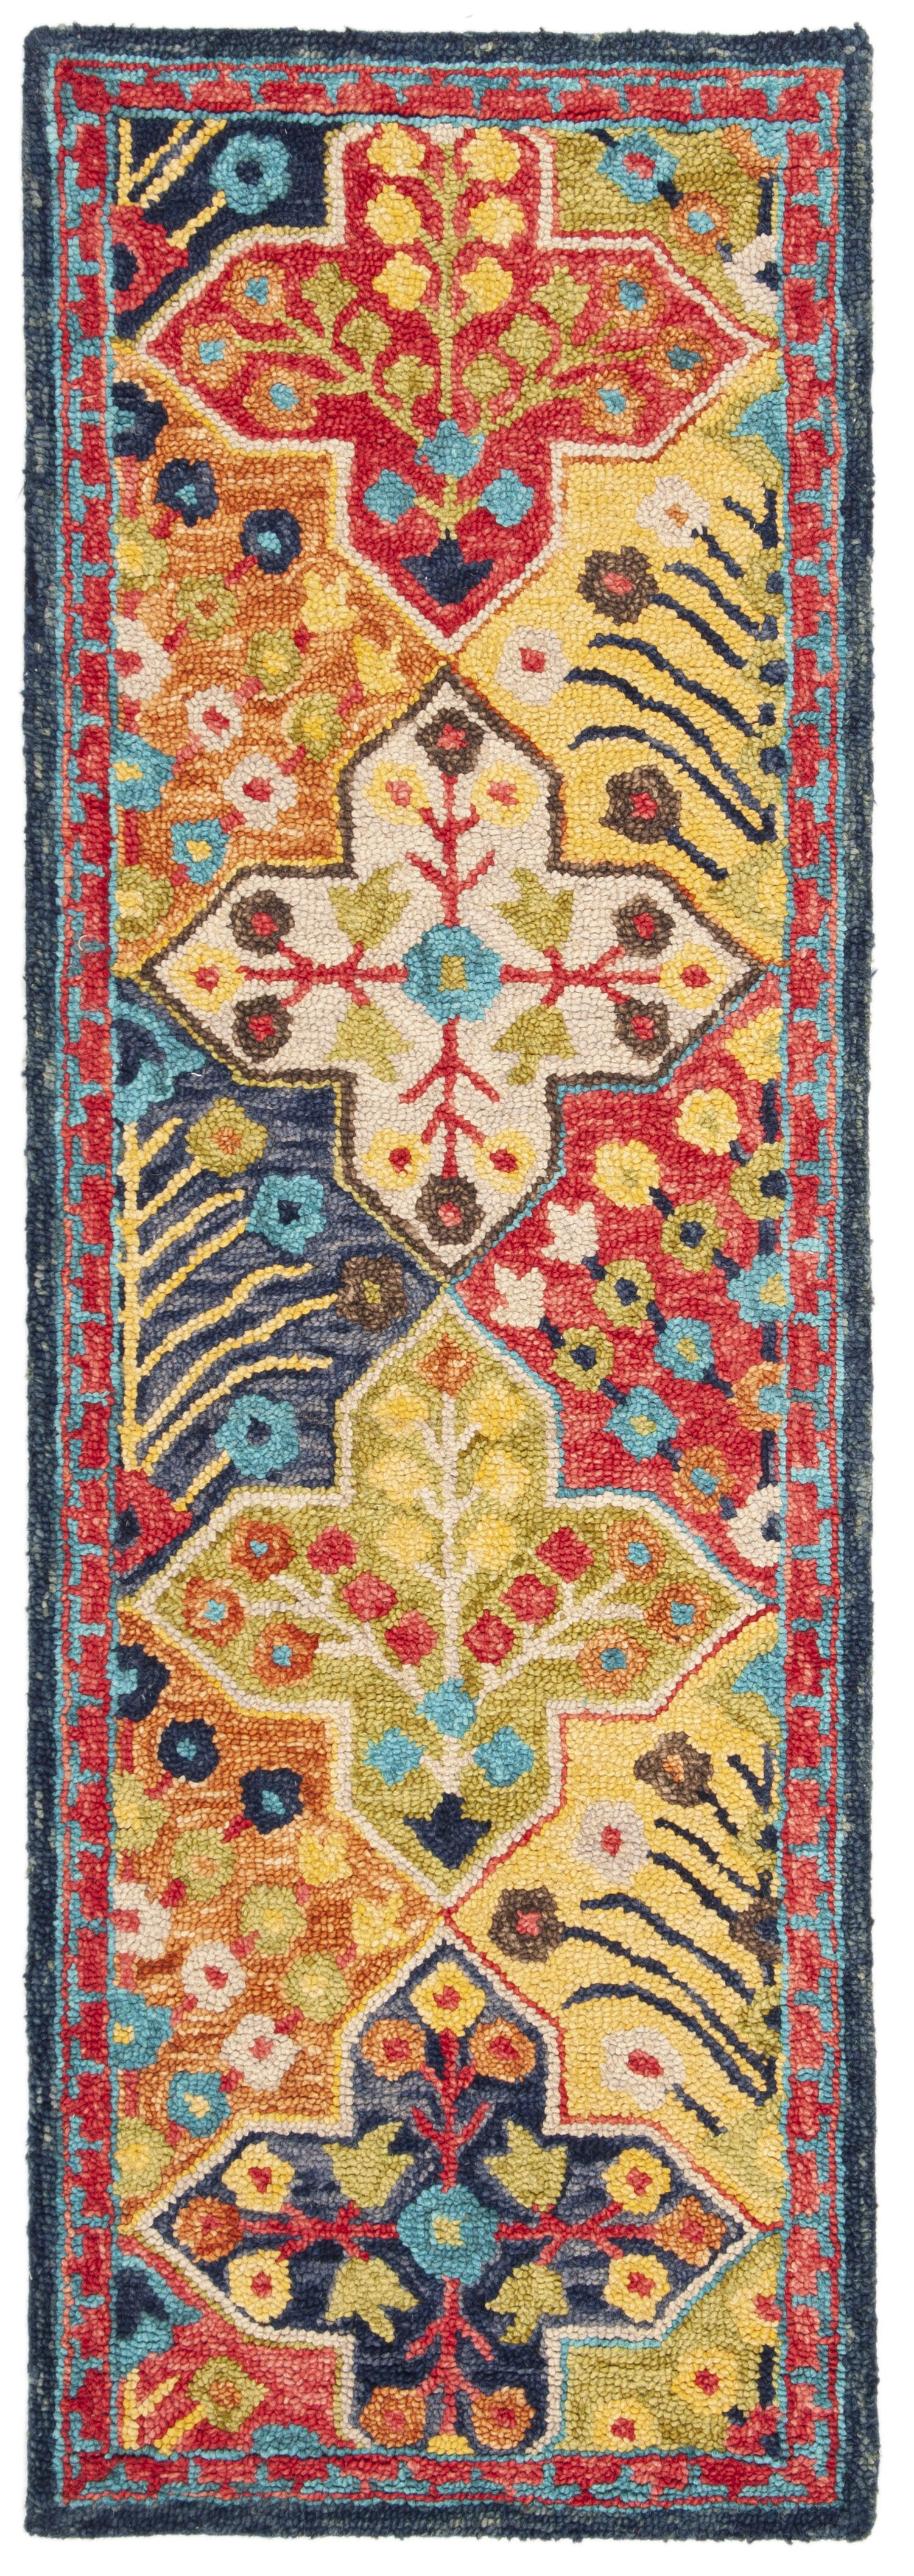 Poulin Hand-Tufted Wool Blue/Orange Area Rug Rug Size: Rectangle 4' X 6'